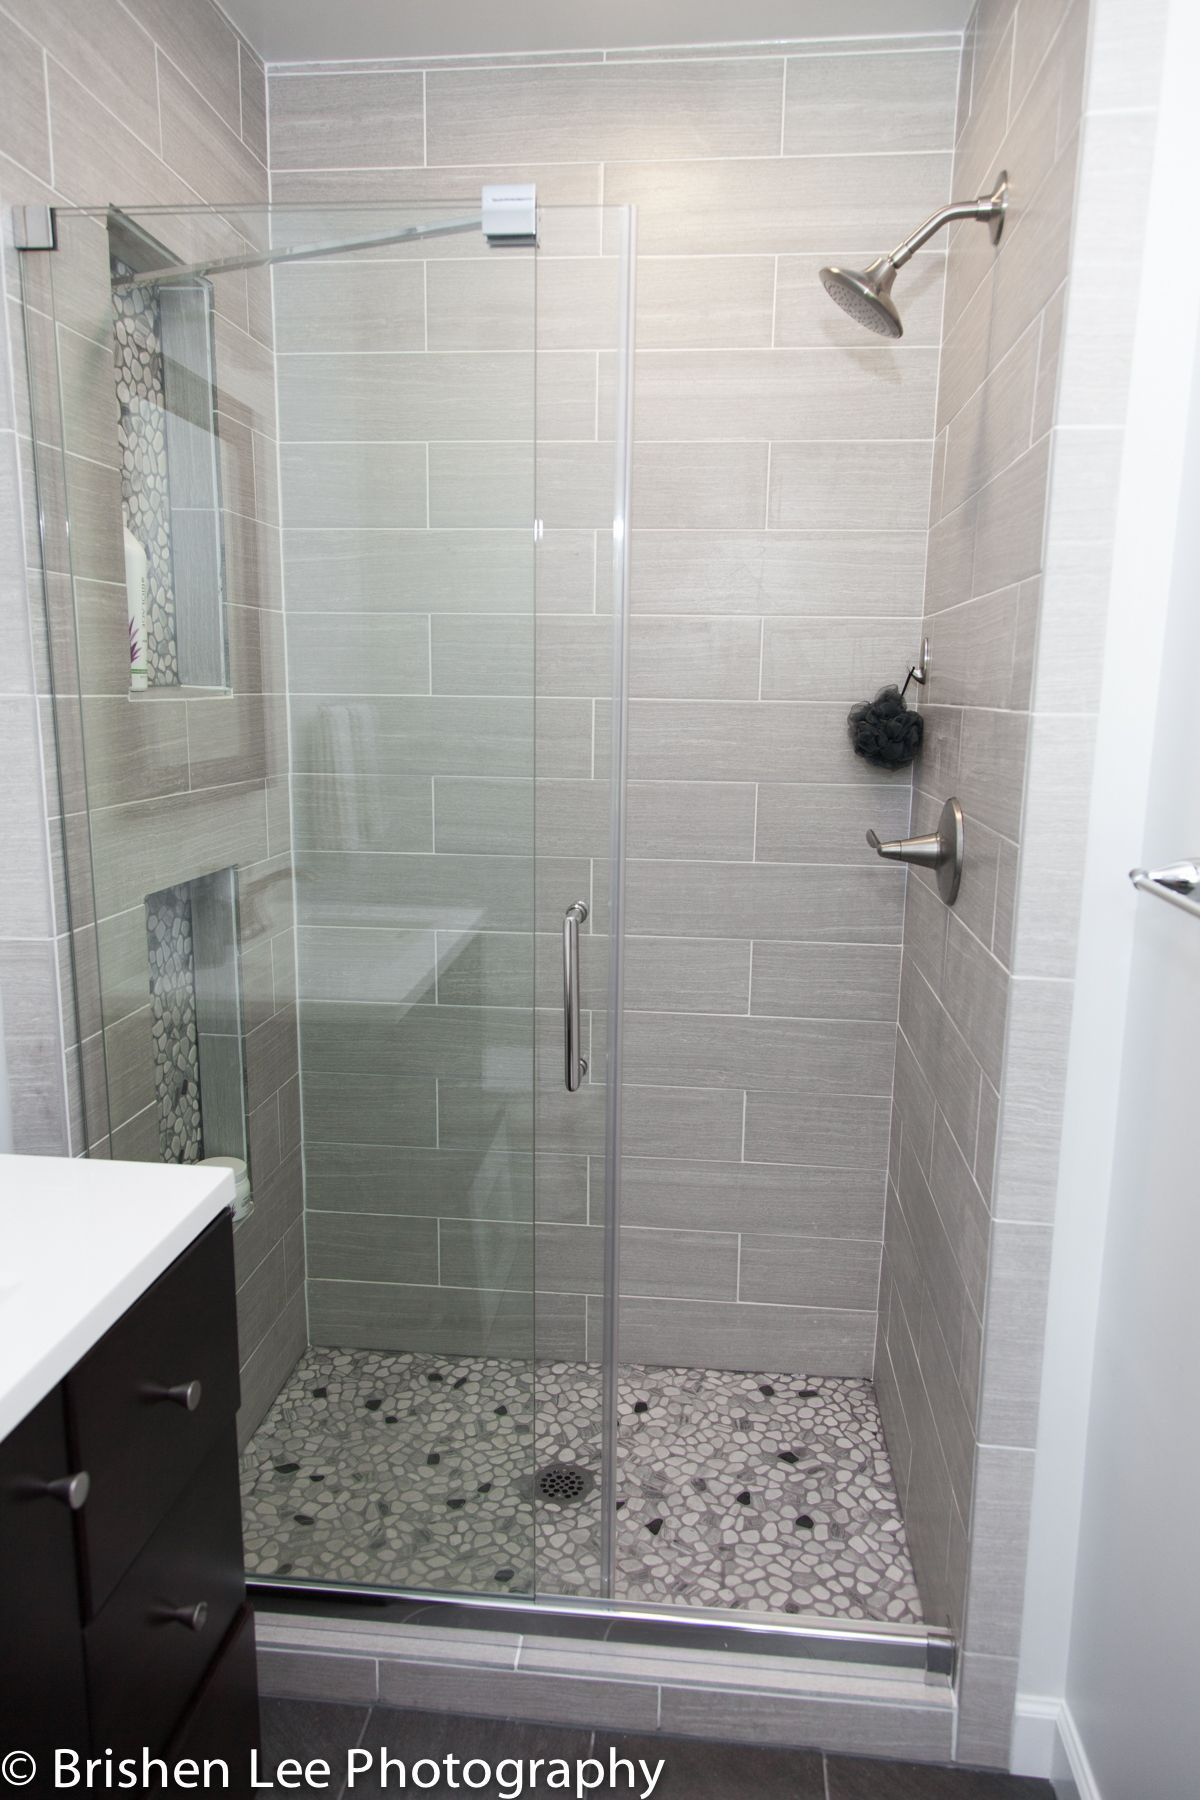 Things To Know Before You Buy Shower Doors Enjoy Your Time Bathroom Shower Doors Bathroom Remodel Shower Bathroom Remodel Small Shower